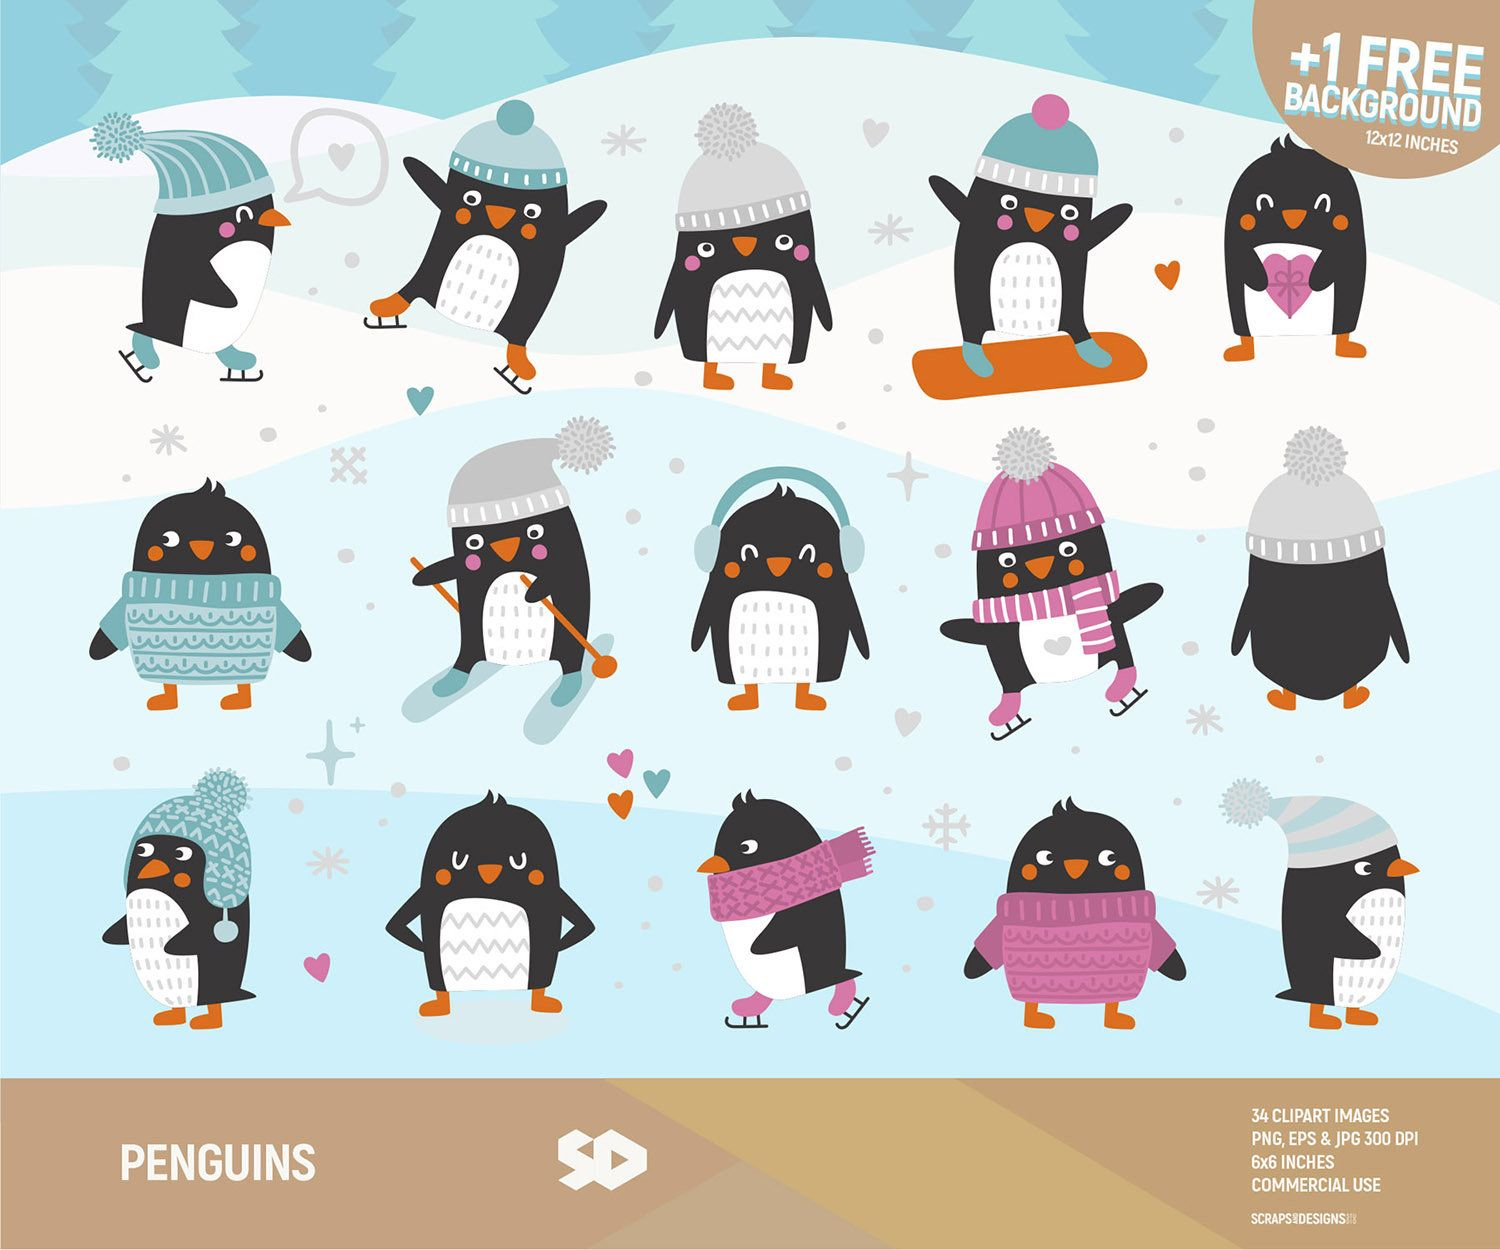 penguins clipart penguin clip art winter clipart snow background scarfs hats snowflakes ice skate ski snowboard commercial use  [ 1500 x 1250 Pixel ]